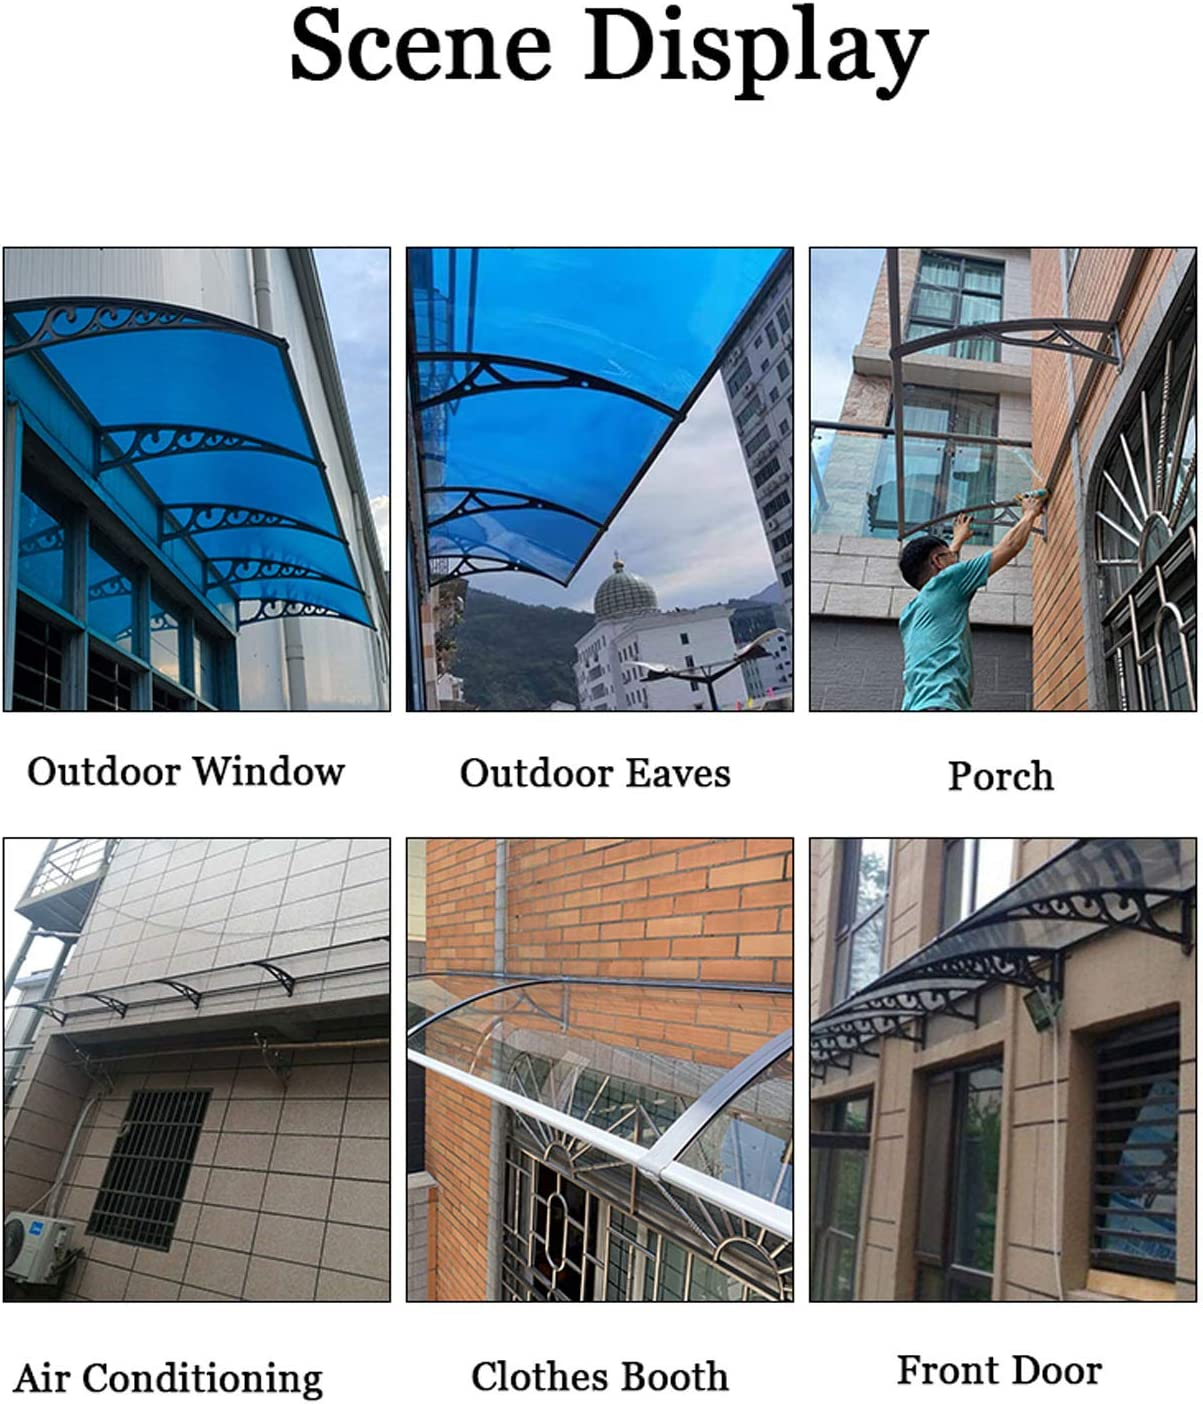 Door Awning Awning Rain Shelter Canopy Awning for Door Window Robust Hollow PC Board Transparent